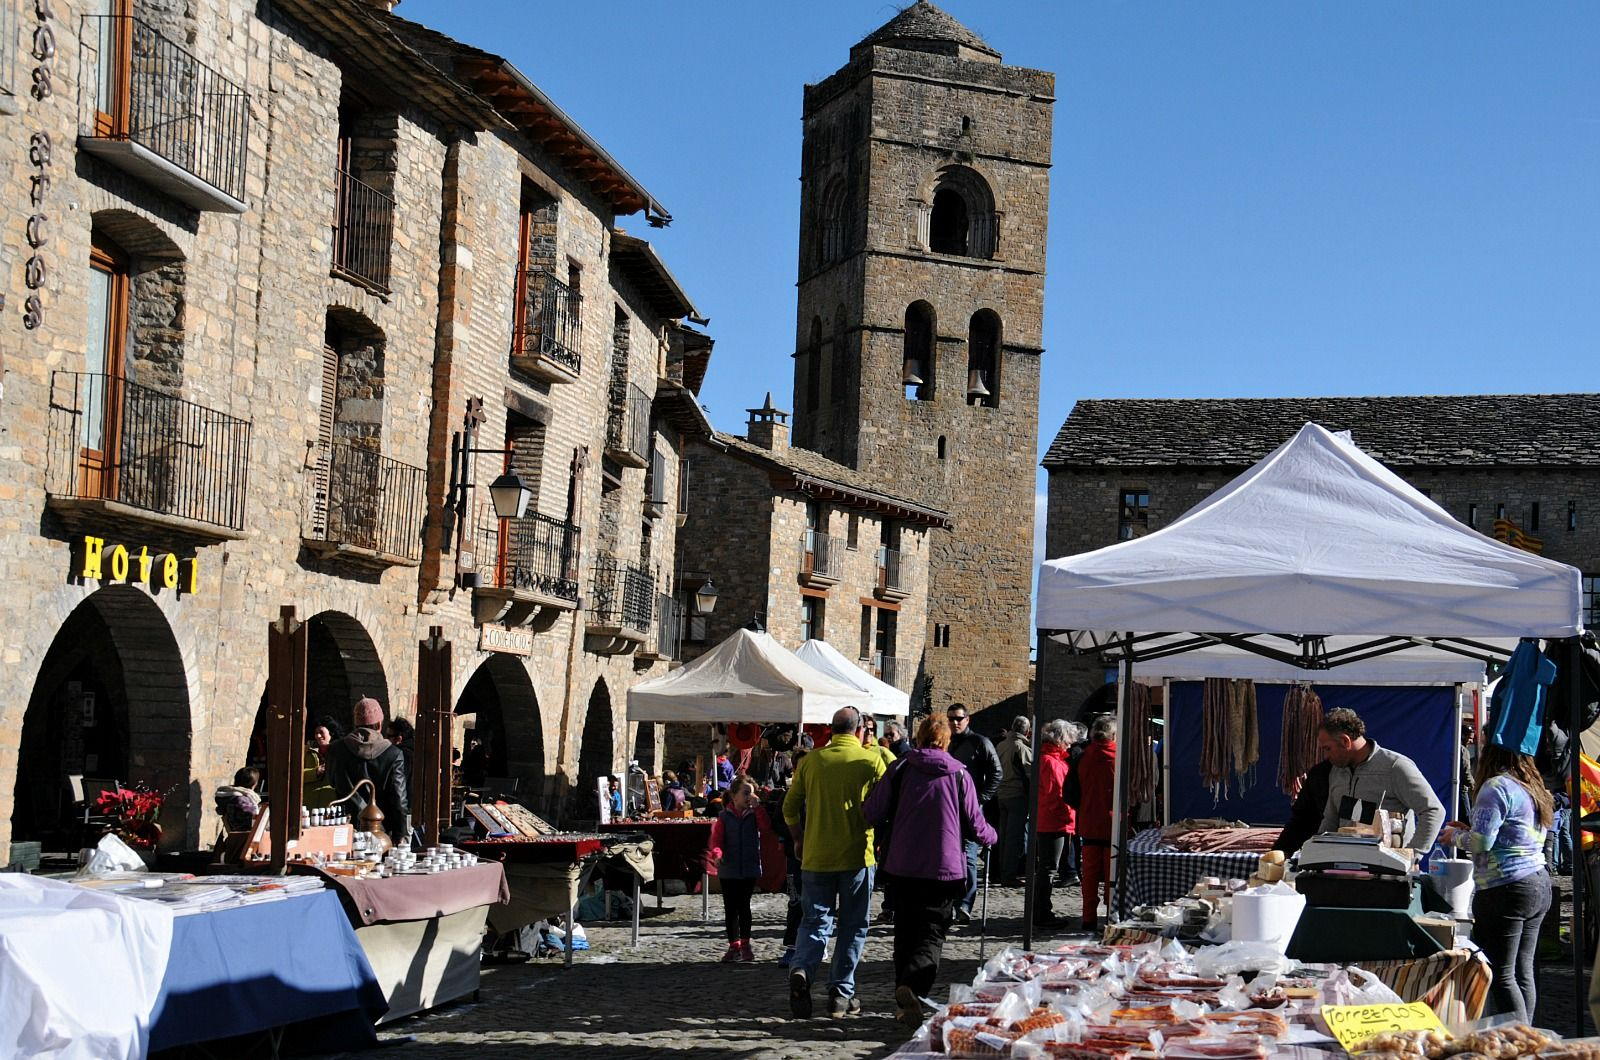 The square in the medieval town of Ainsa with foodstalls and people walking about on the Learn Spanish Holiday with Aragon Active